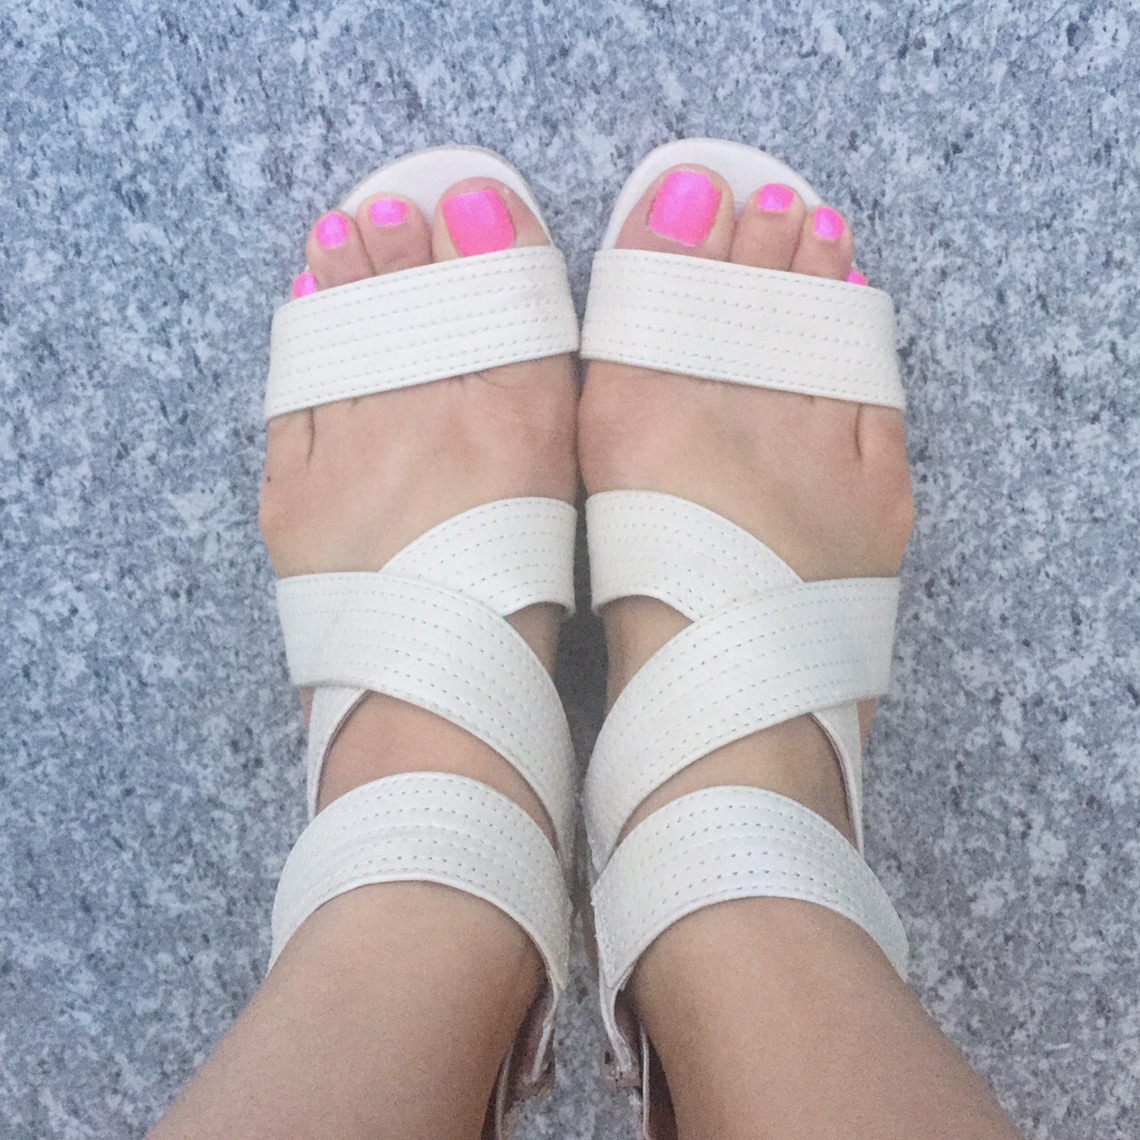 Miz Mooz Dayna Wedge Sandals from Shoes on Fourth ($30, on sale from $135)